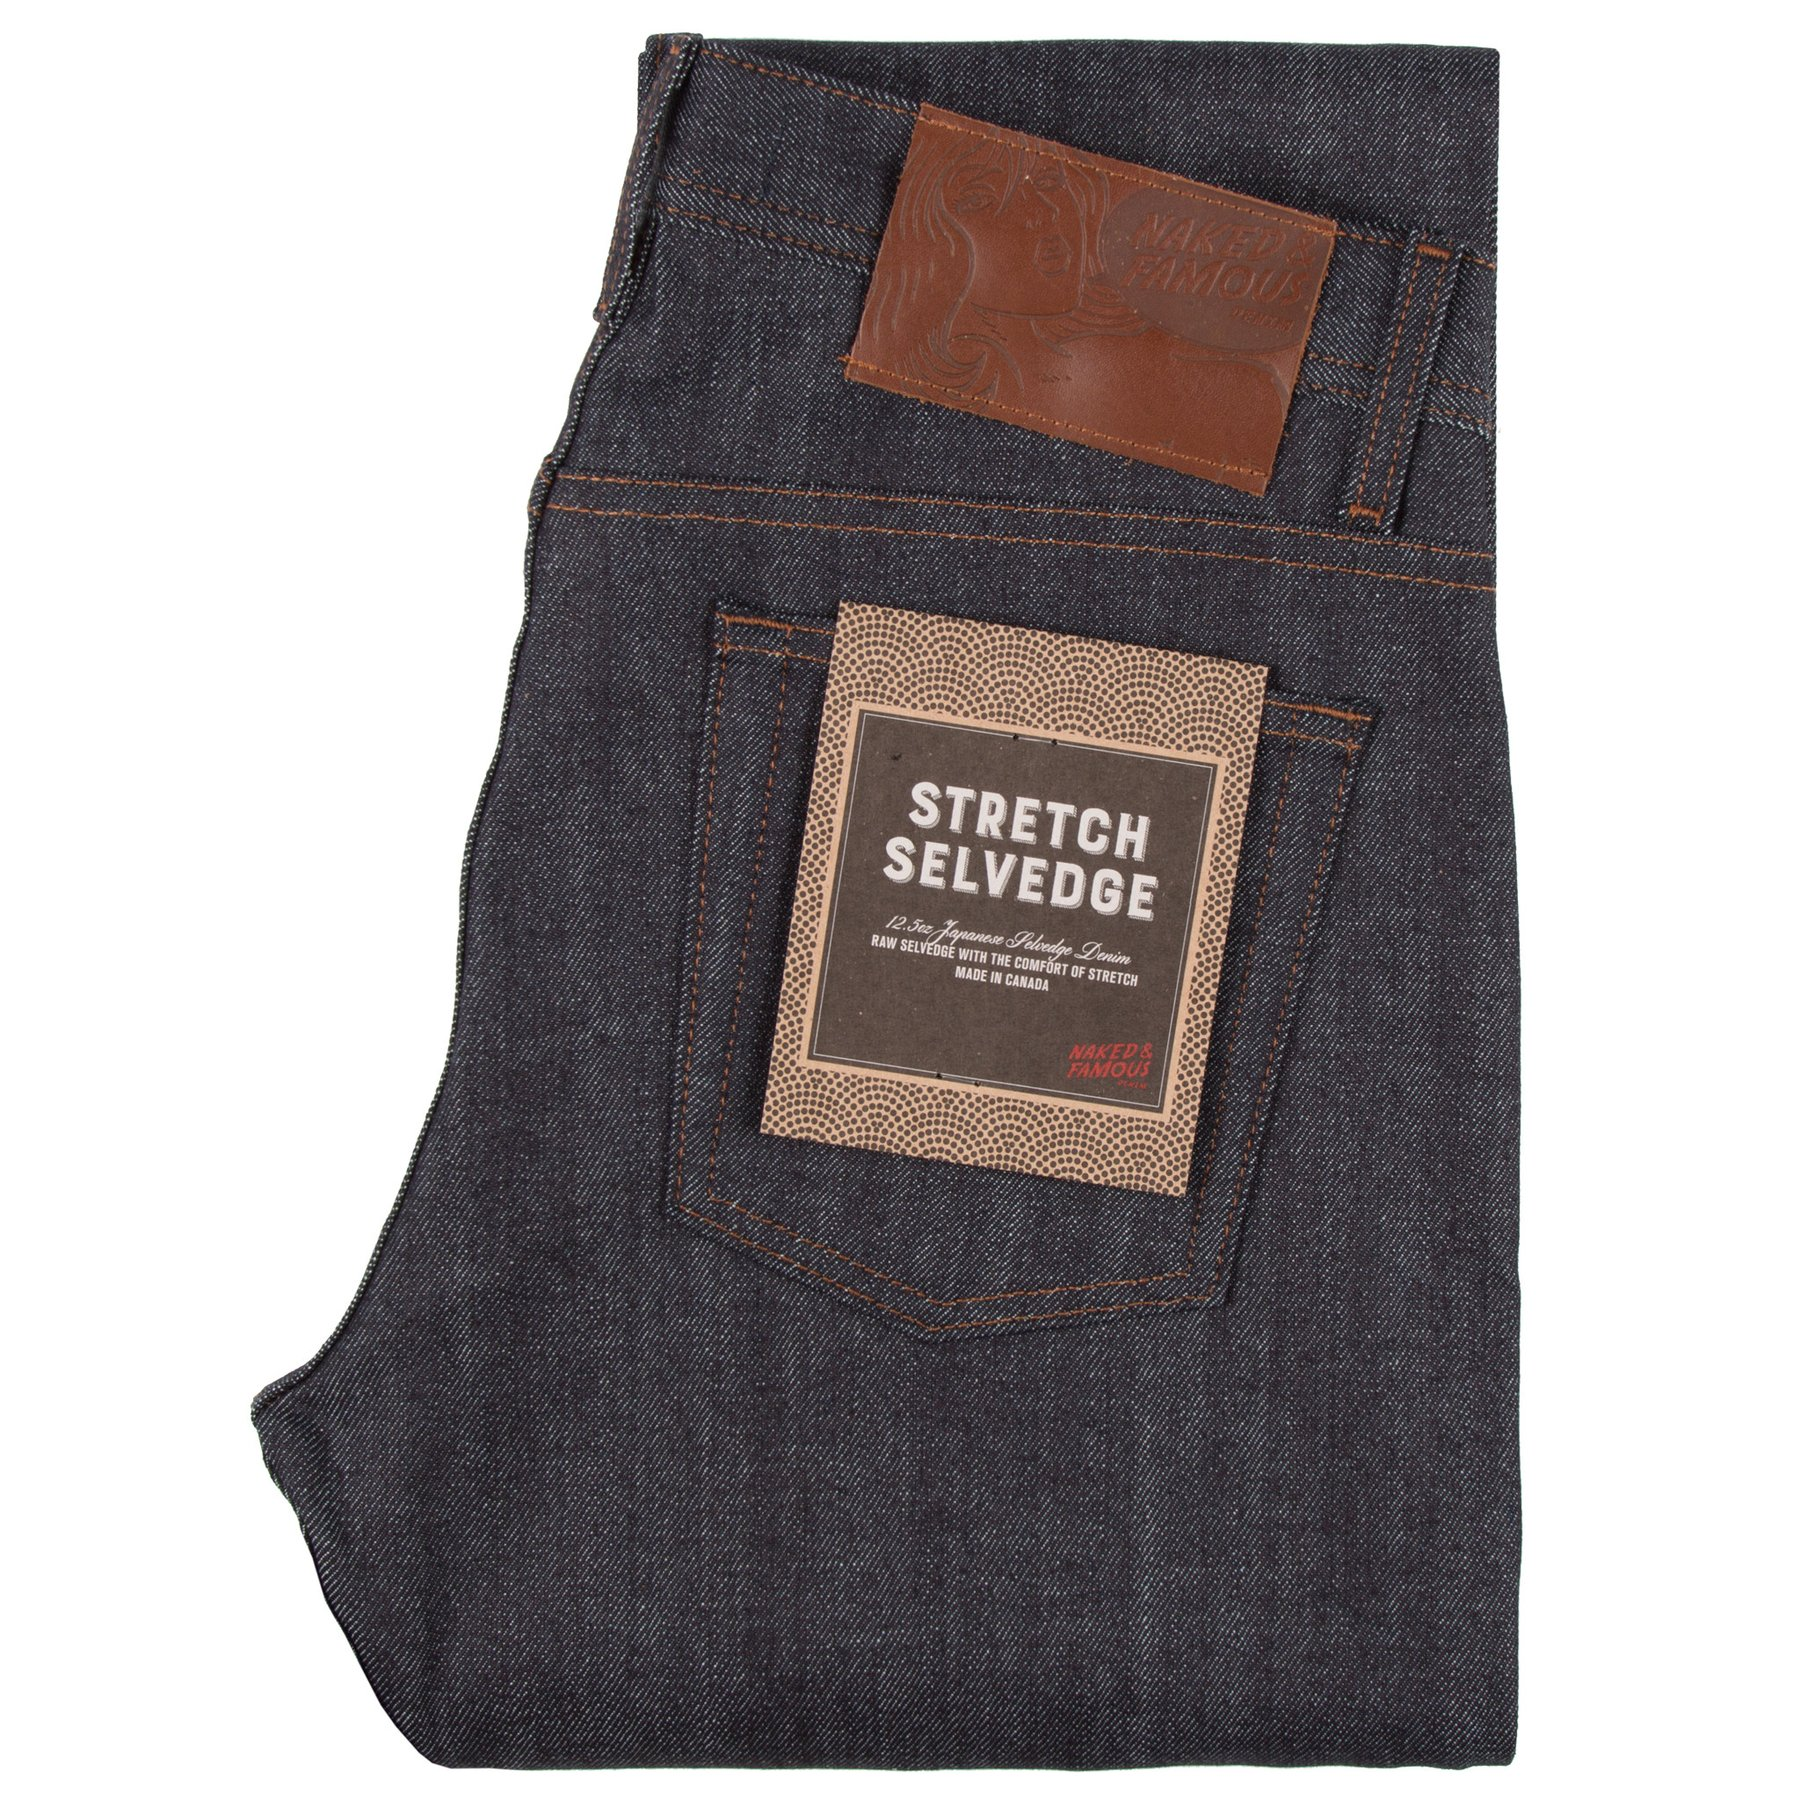 Stretch Selvedge Jeans Folded